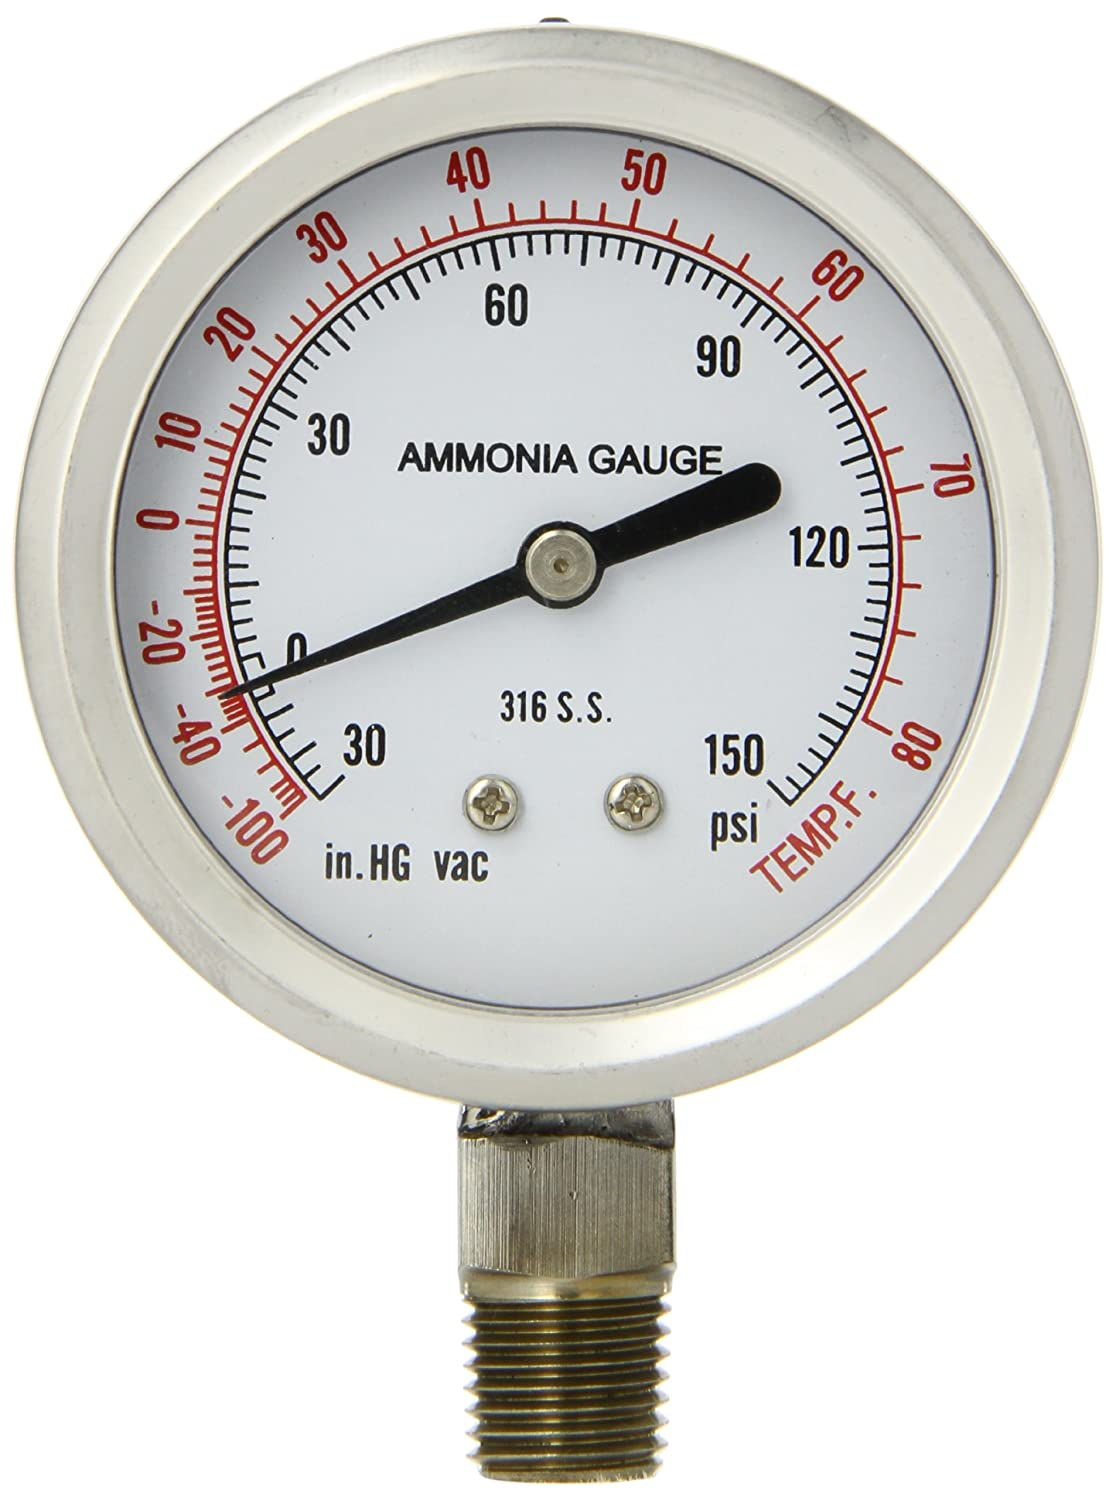 PIC Gauge 401DFW-254CF Dry/Fillable Bottom Mount Ammonia Refrigeration Gauge with Stainless Steel Case, 316 Stainless Steed Internals, Plastic Lens, Welded Connection, 2-1/2' Dial Size, 1/4' Male NPT Connection Size, 30/0/150 psi Range 2-1/2 Dial Size